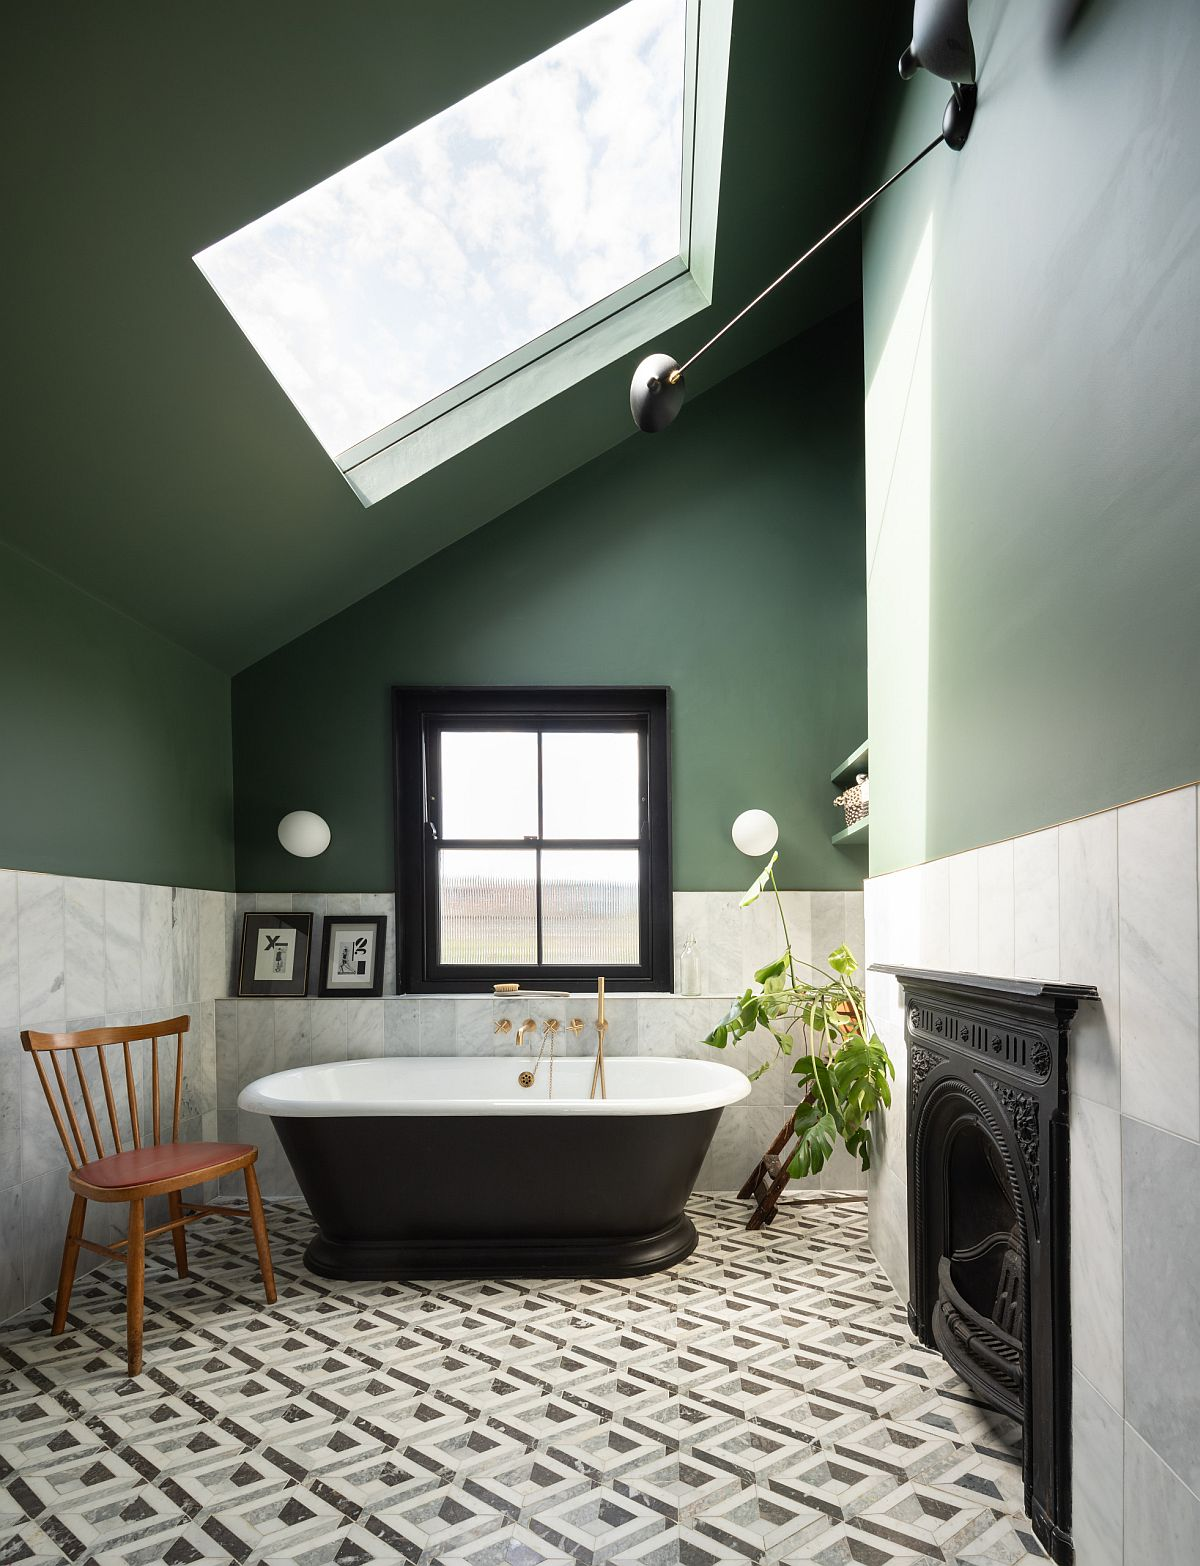 Traditional-bathub-brings-a-black-focal-point-to-this-eclectic-bathroom-in-green-and-white-89901